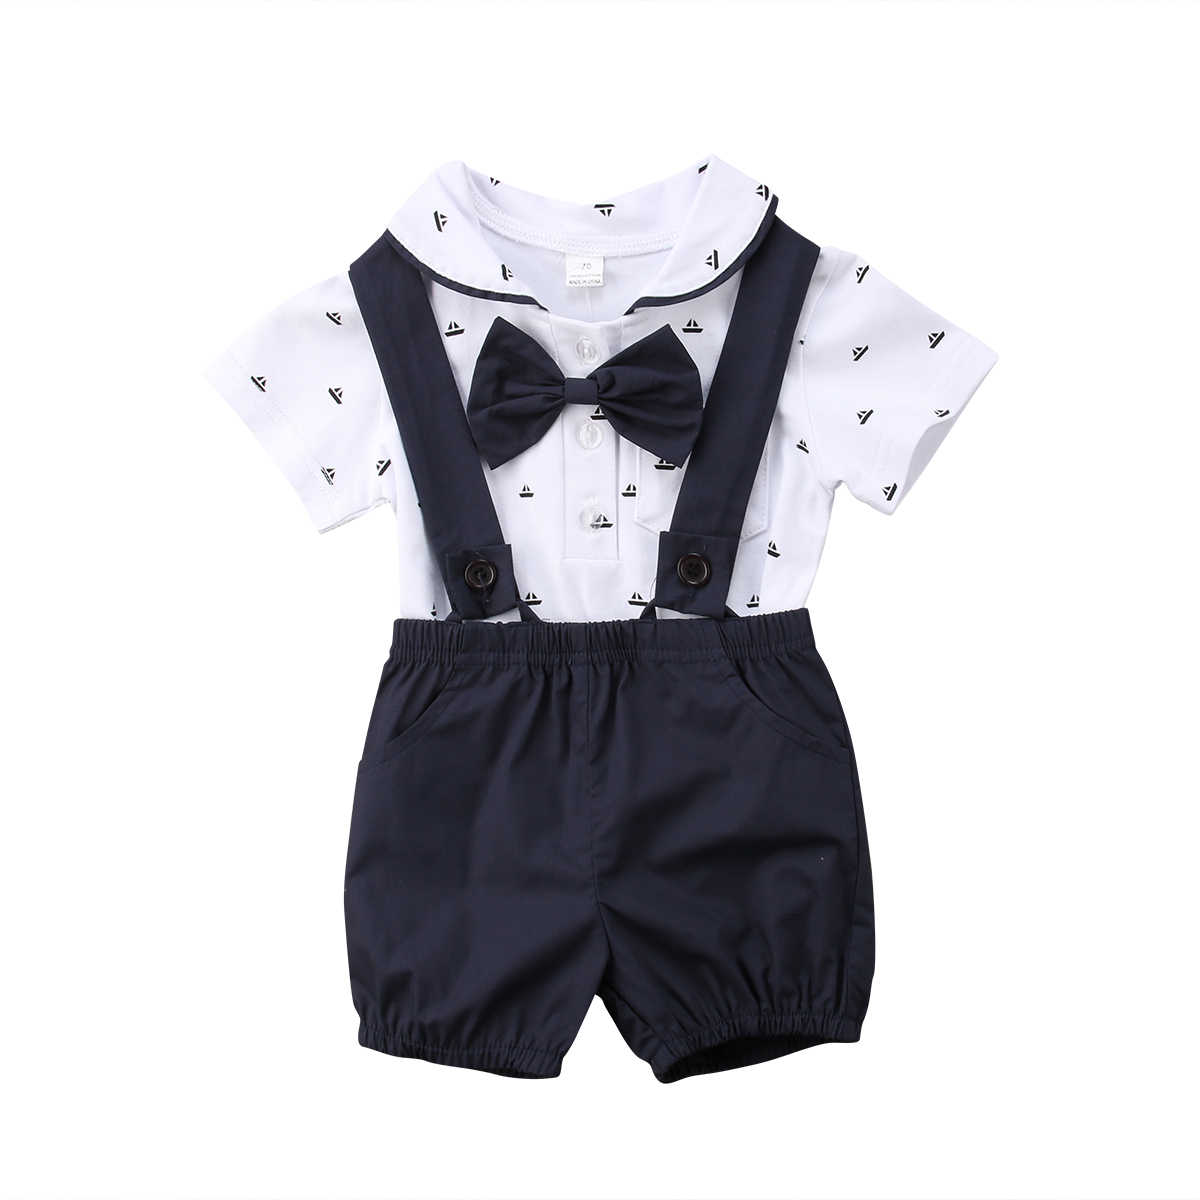 6254558e8d76 Detail Feedback Questions about 2018 Summer Newborn Kid Baby Boy Gentleman  Outfit Clothes Romper Jumpsuit Bib Shorts Black Red Set on Aliexpress.com  ...